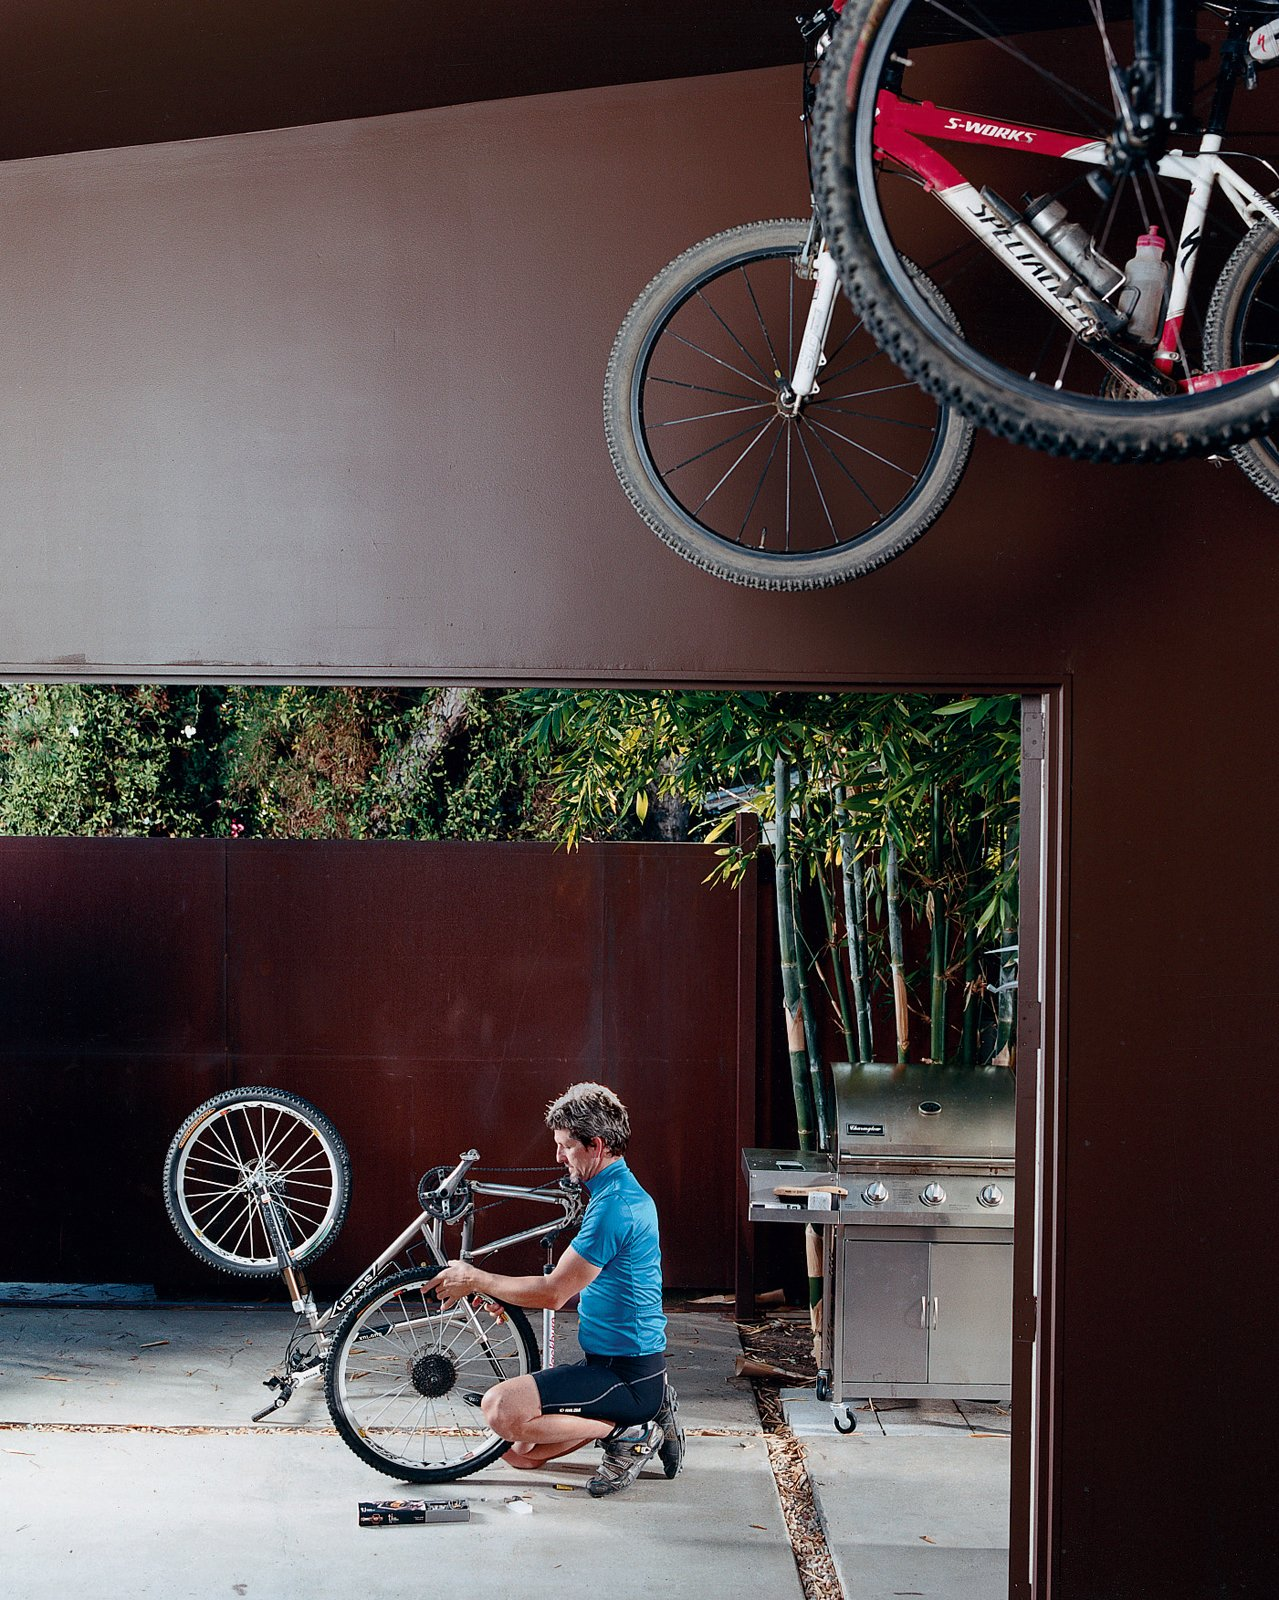 Pierre Kozely mends his bike on a patio in the rear yard, seen from their garage—which was transformed into a media room. Behind him is a Cor-Ten rolling gate that gives access   to the back alley. Venetian Vicissitude - Photo 7 of 9